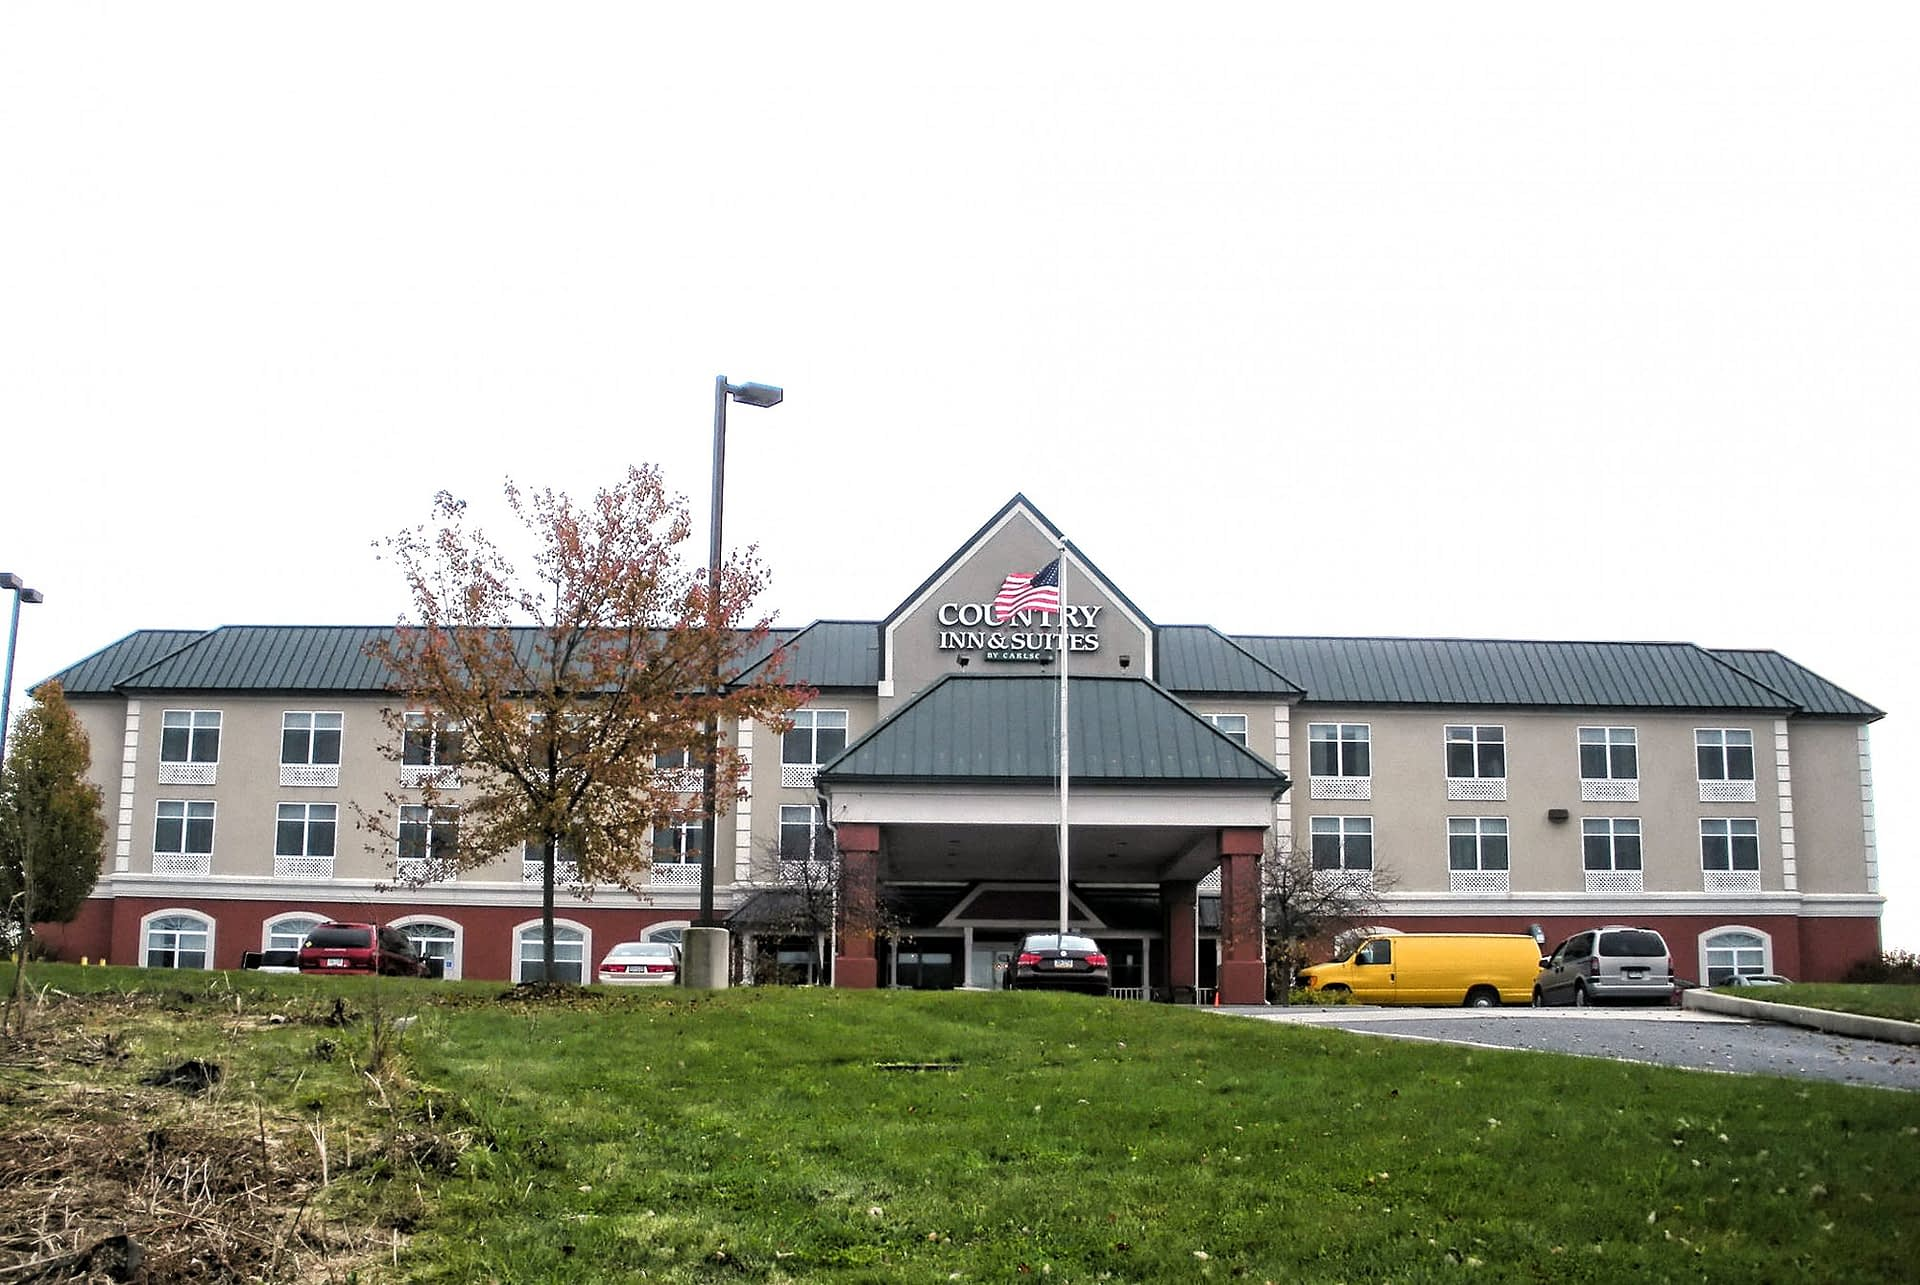 Country Inn & Suites - Mechanicsburg